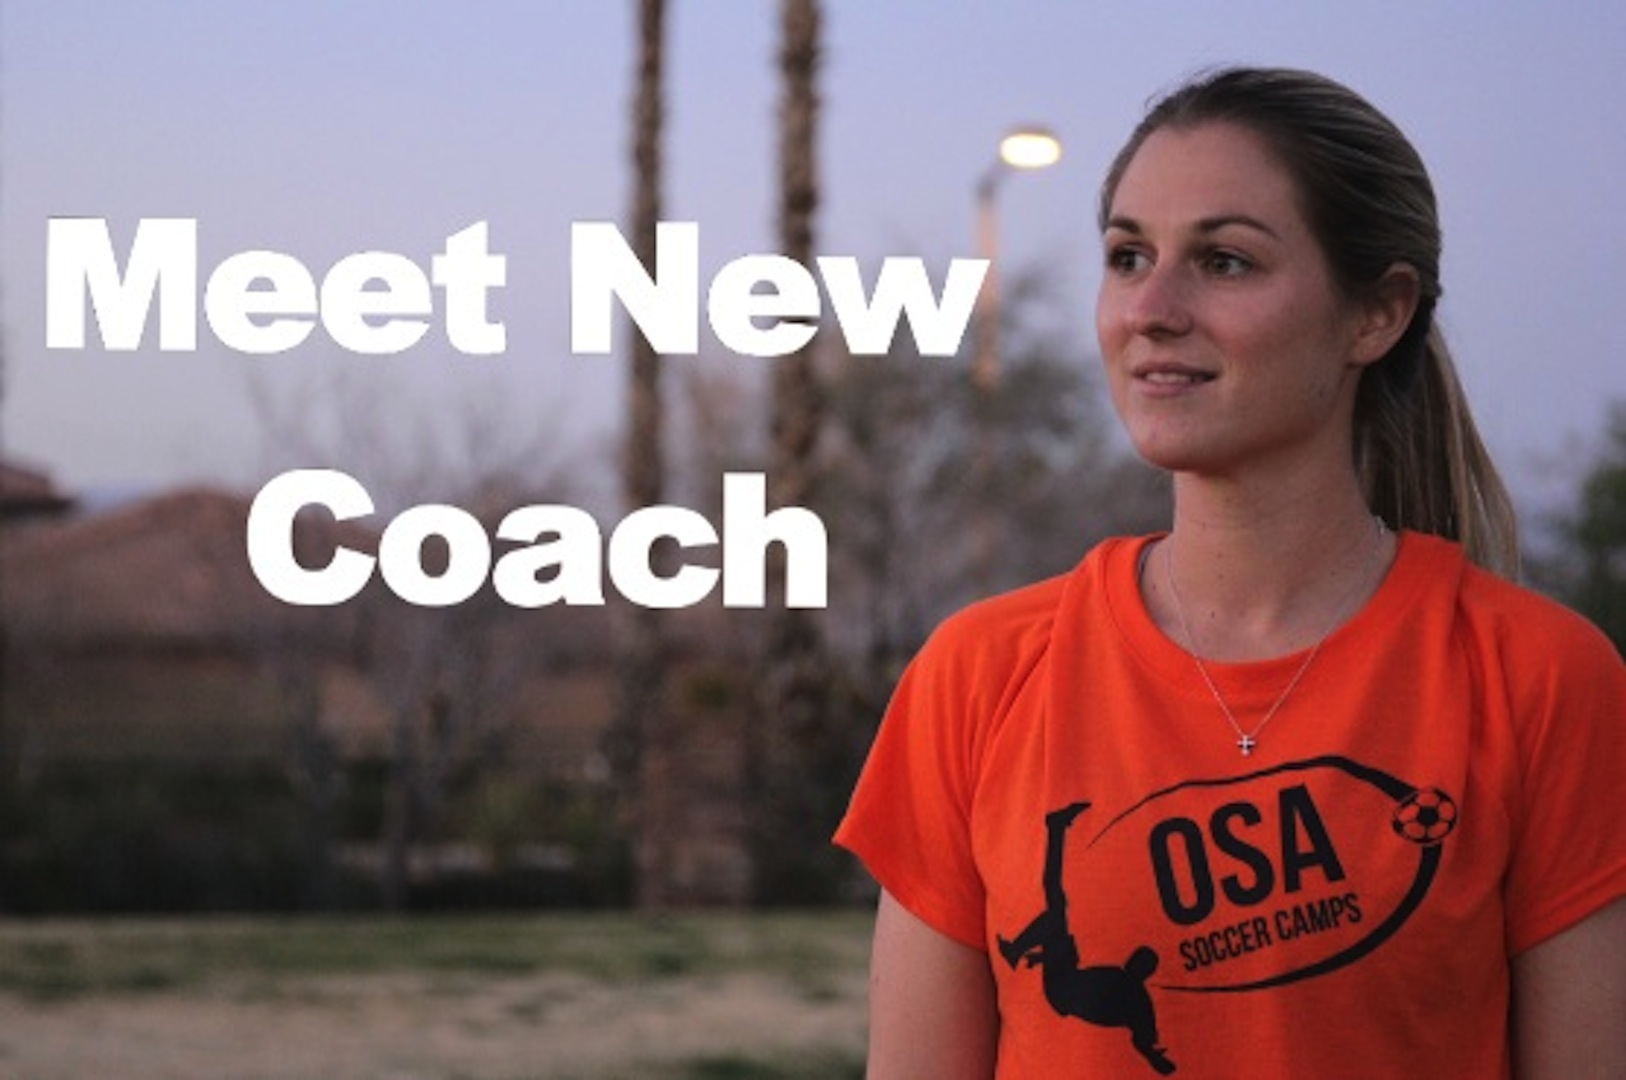 Introducing New OSA Coach Emily Grant